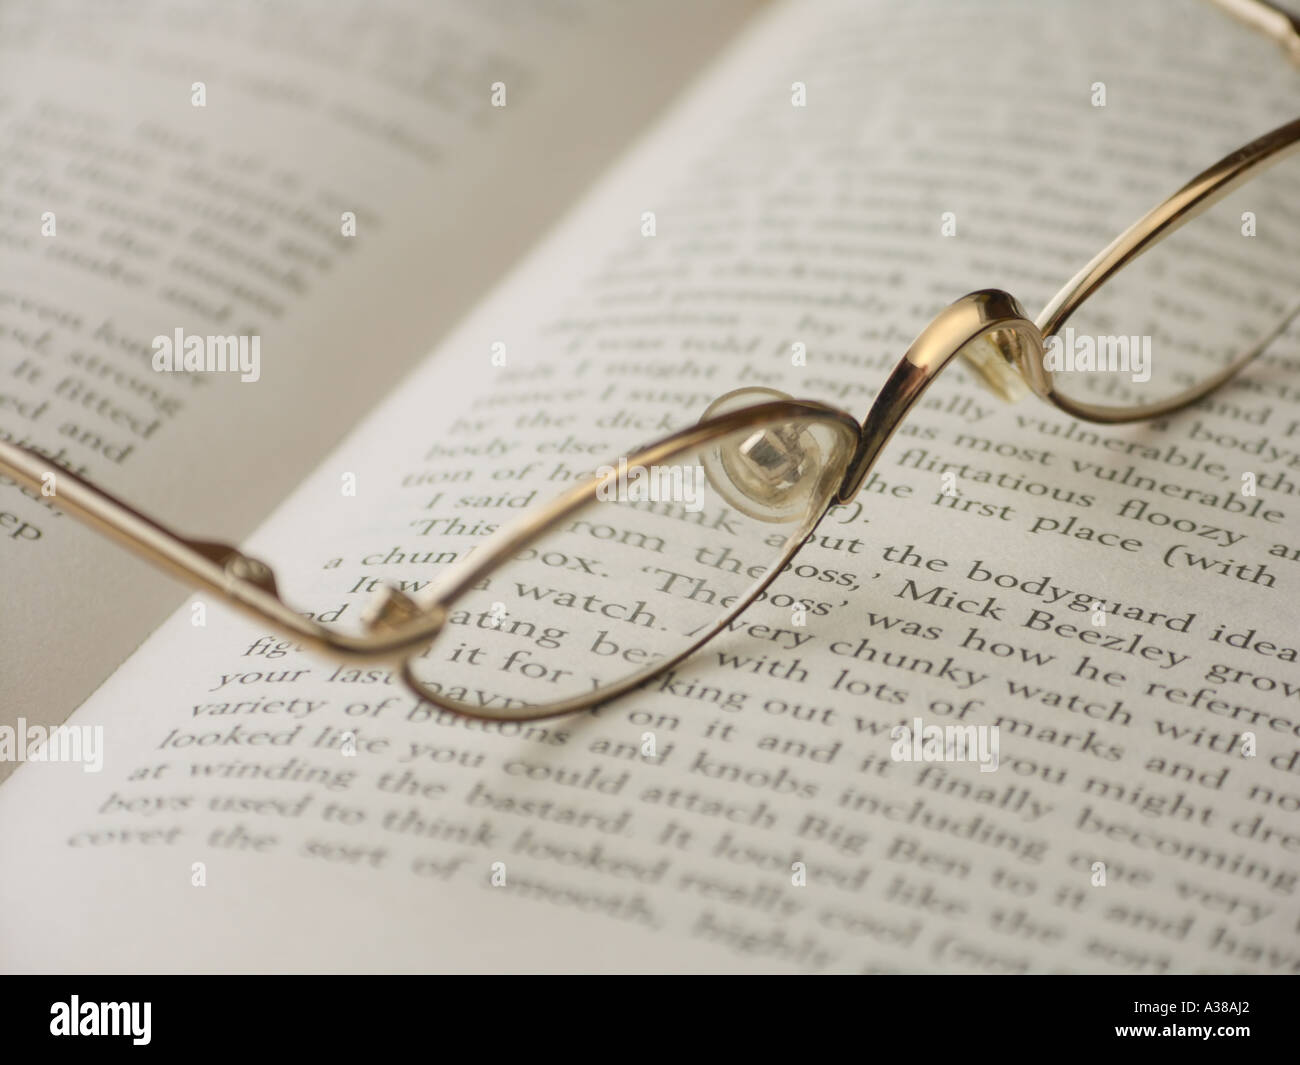 394115a1bb2 Gold Rimmed Spectacles Stock Photos   Gold Rimmed Spectacles Stock ...